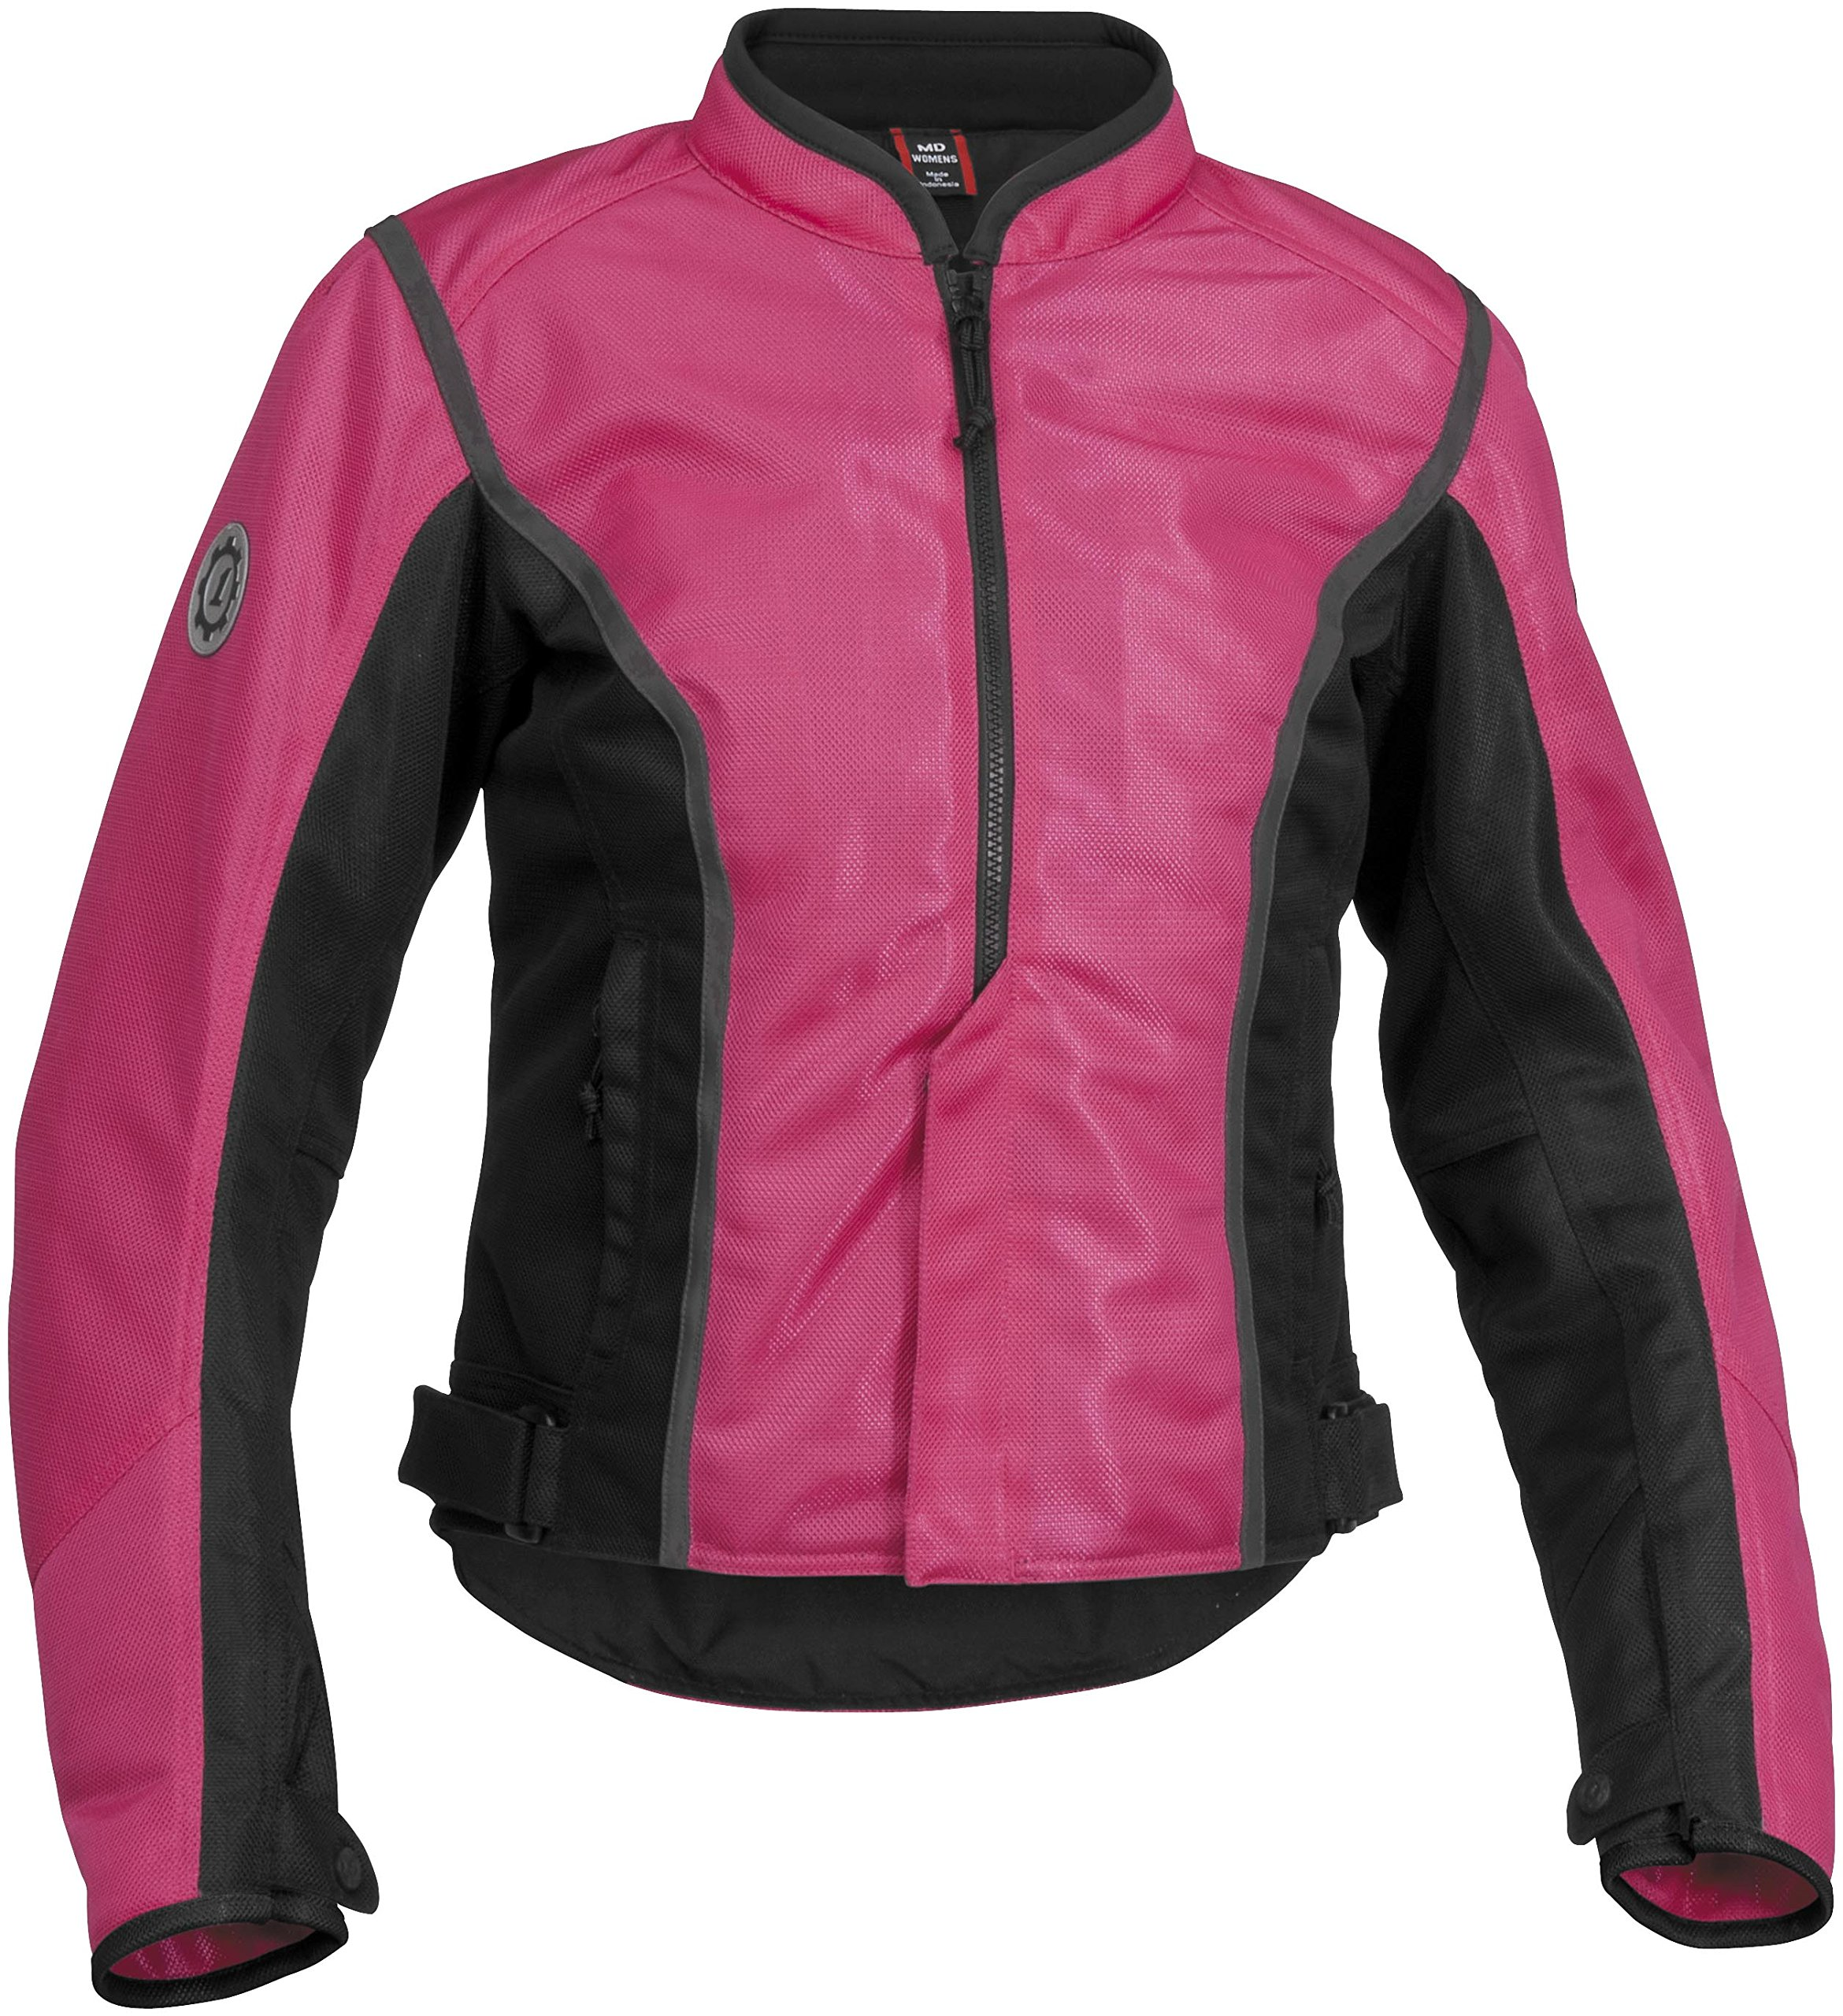 Firstgear Contour Mesh Women's Textile Motorcycle Jacket (Pink/Black, Small)